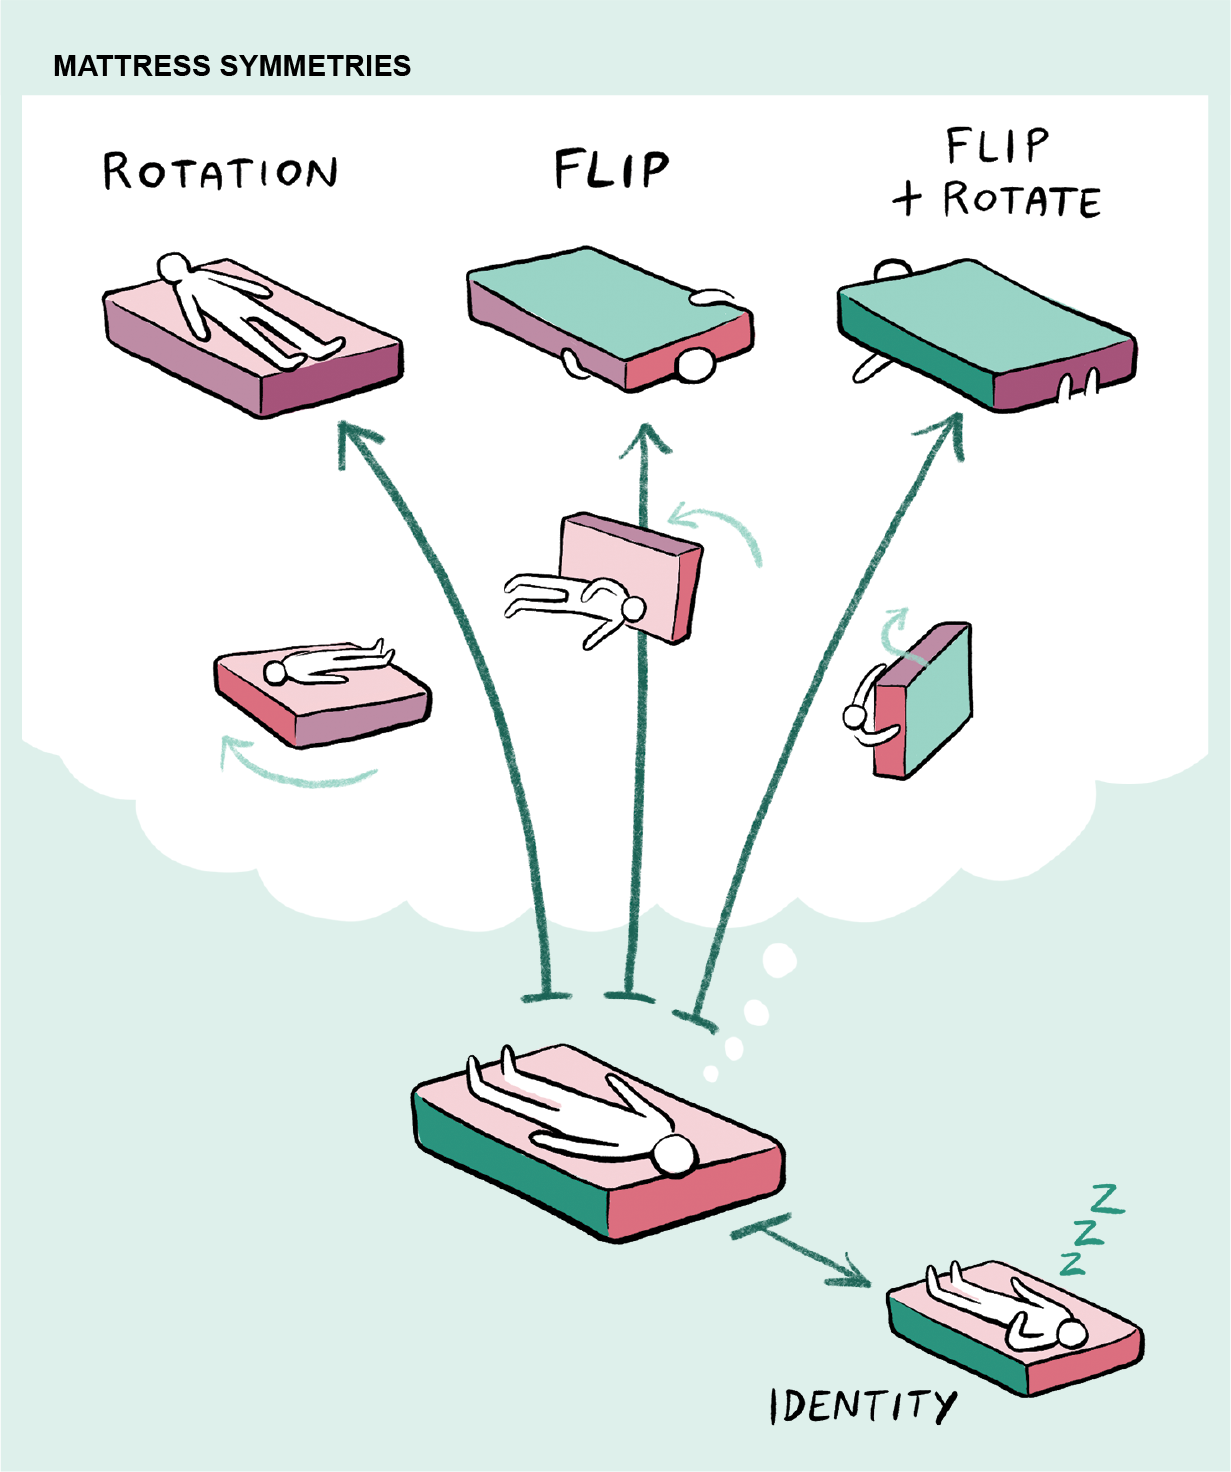 Graphic shows how various ways of flipping and rotating a mattress can result in four symmetries.